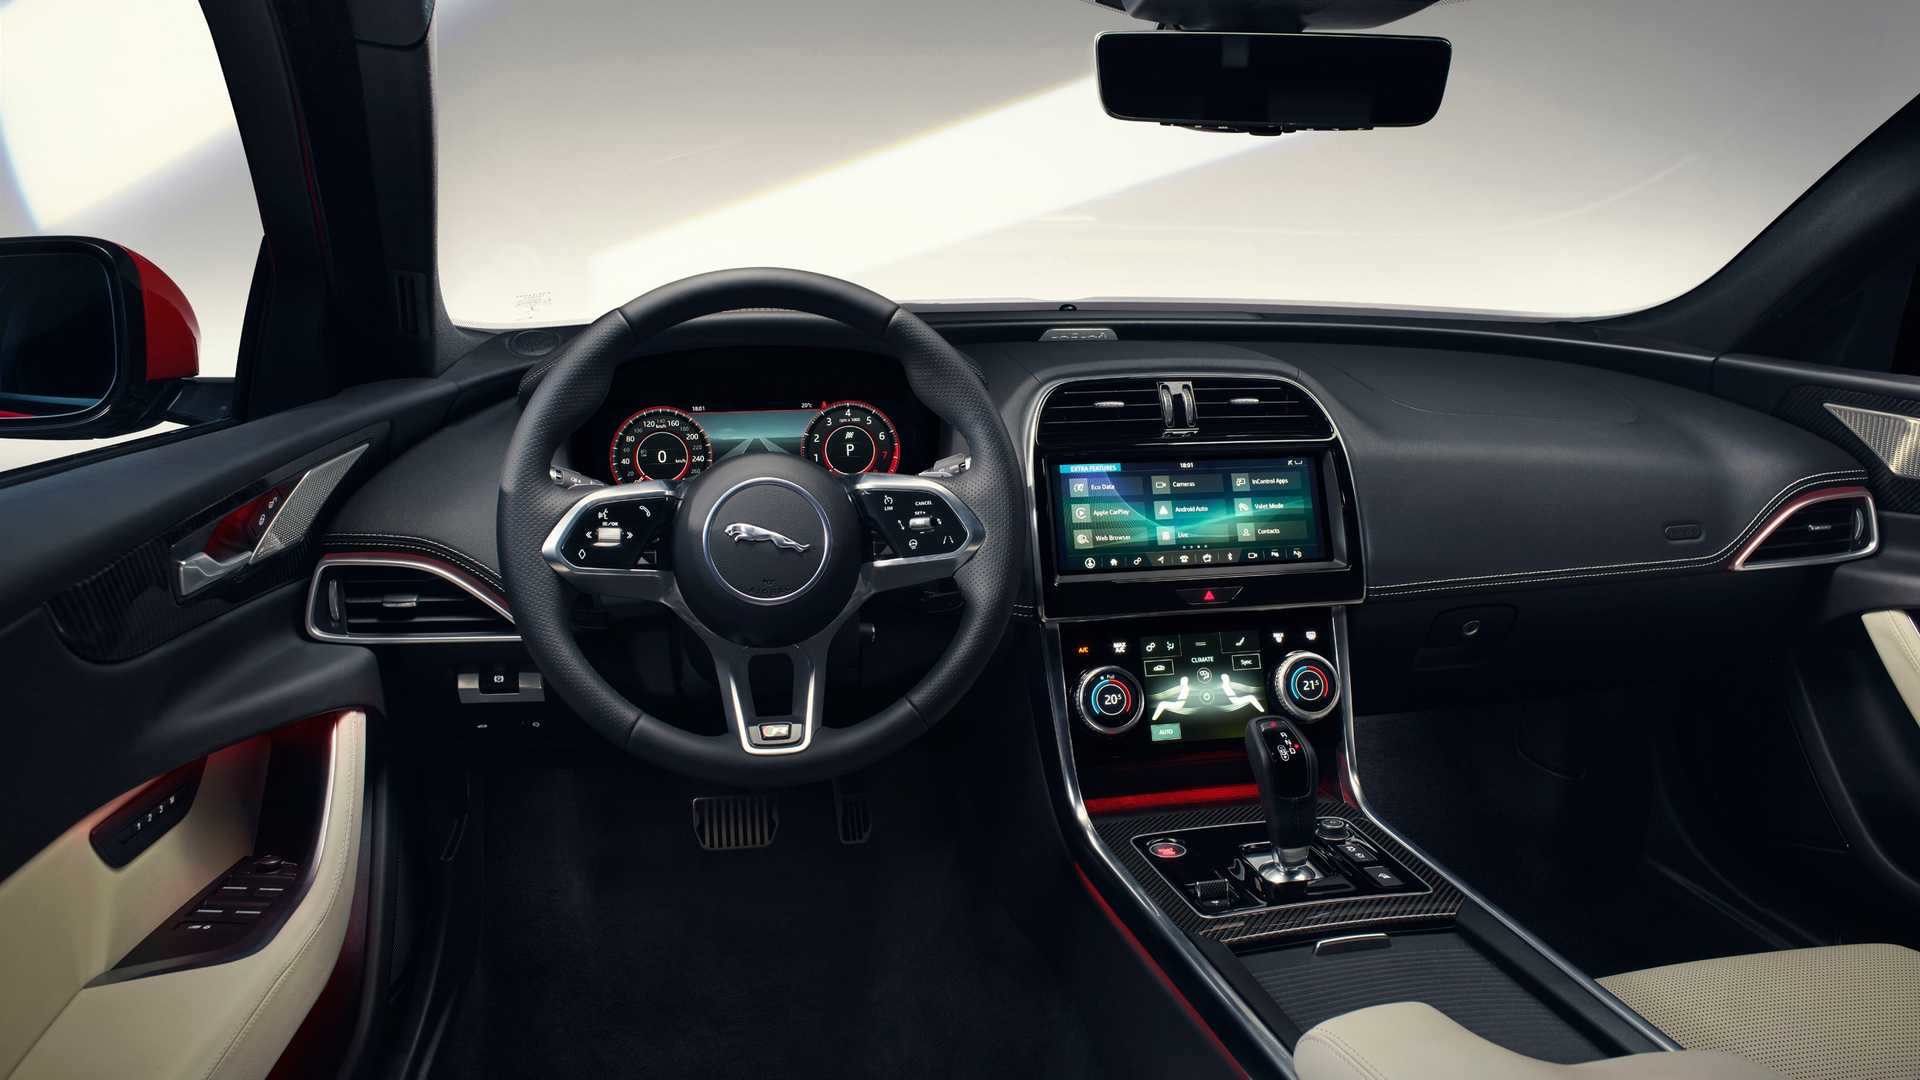 60 New Jaguar Xe 2020 Interior Pricing for Jaguar Xe 2020 Interior